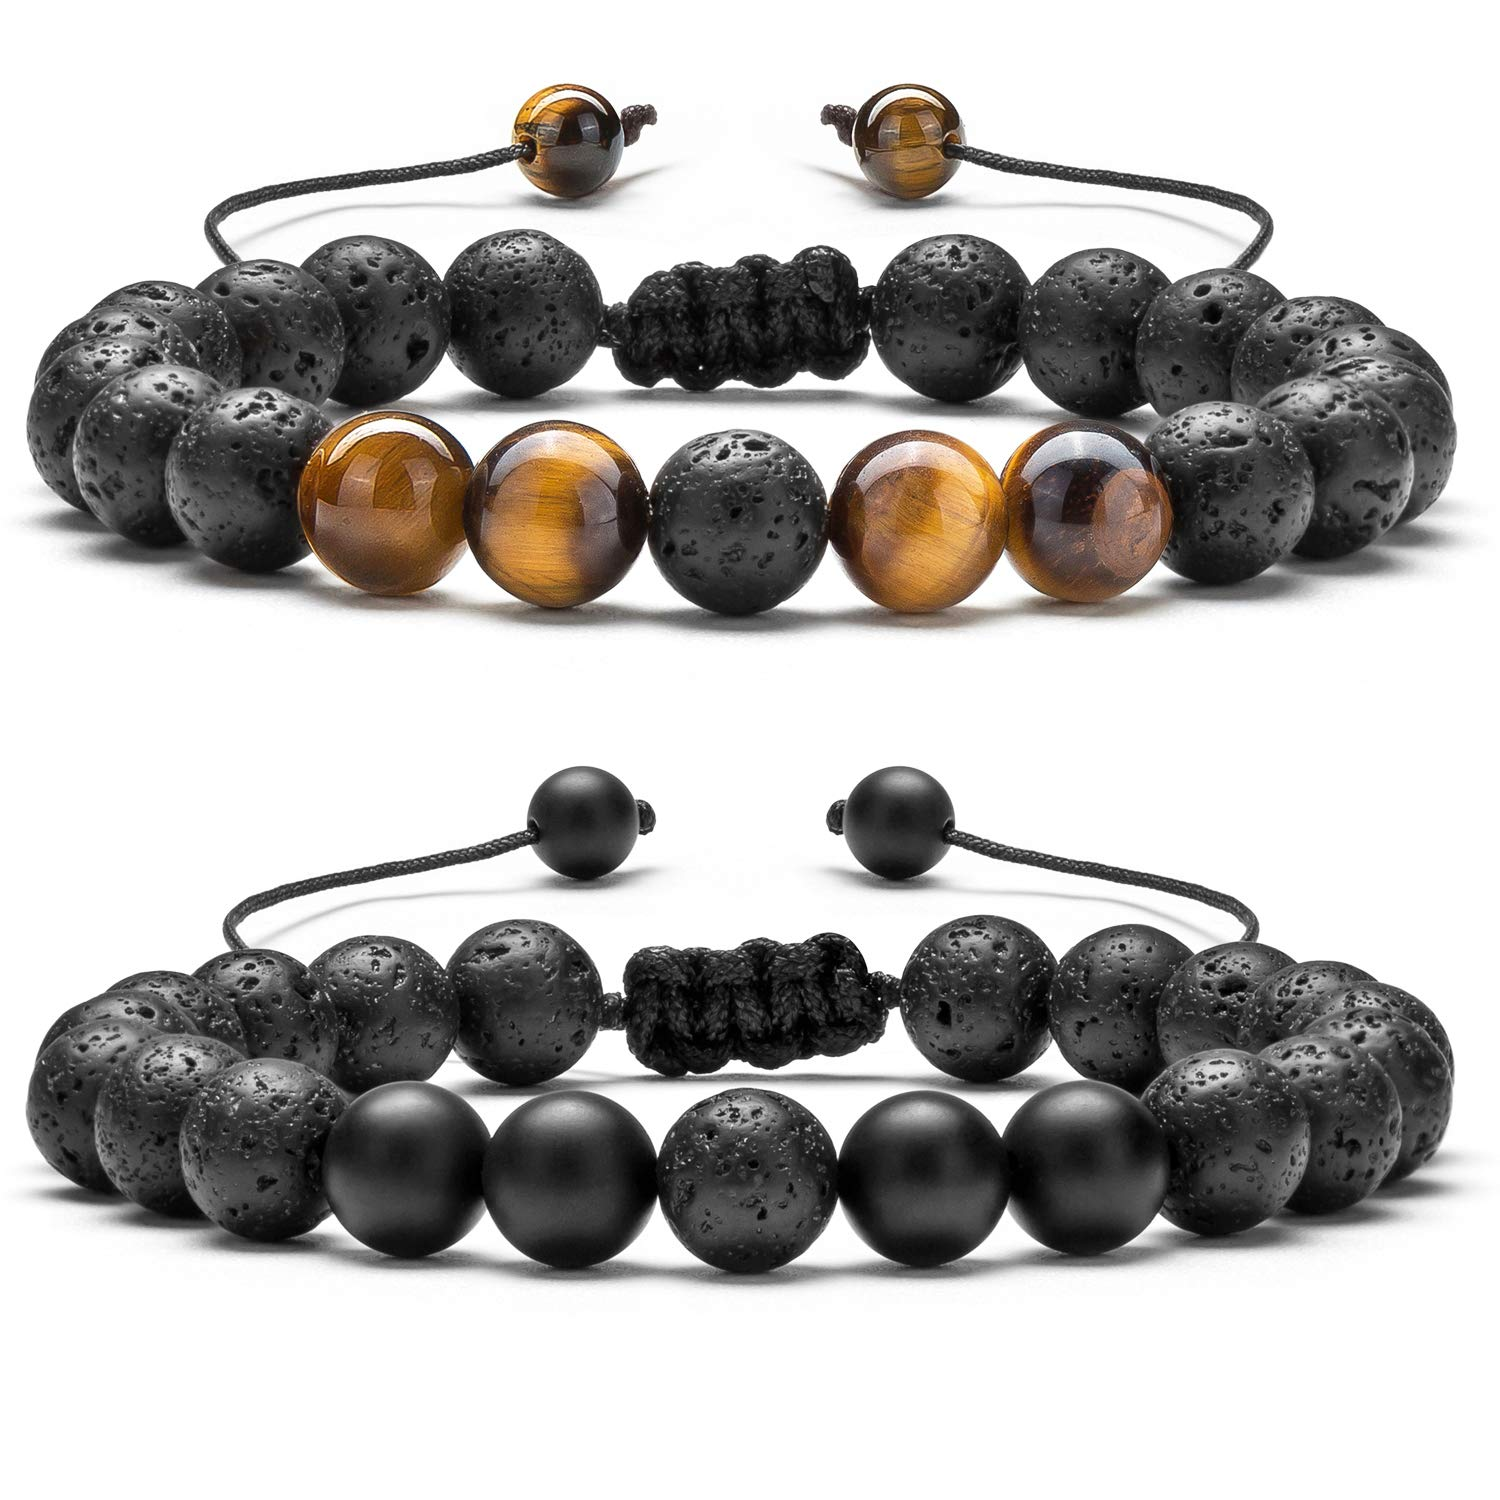 B07H7F6QDN Hamoery Men Women 8mm Lava Rock Aromatherapy Anxiety Essential Oil Diffuser Bracelet Braided Rope Natural Stone Yoga Gifts Beads Bracelet Bangle-21017 71dBBl8TzPL